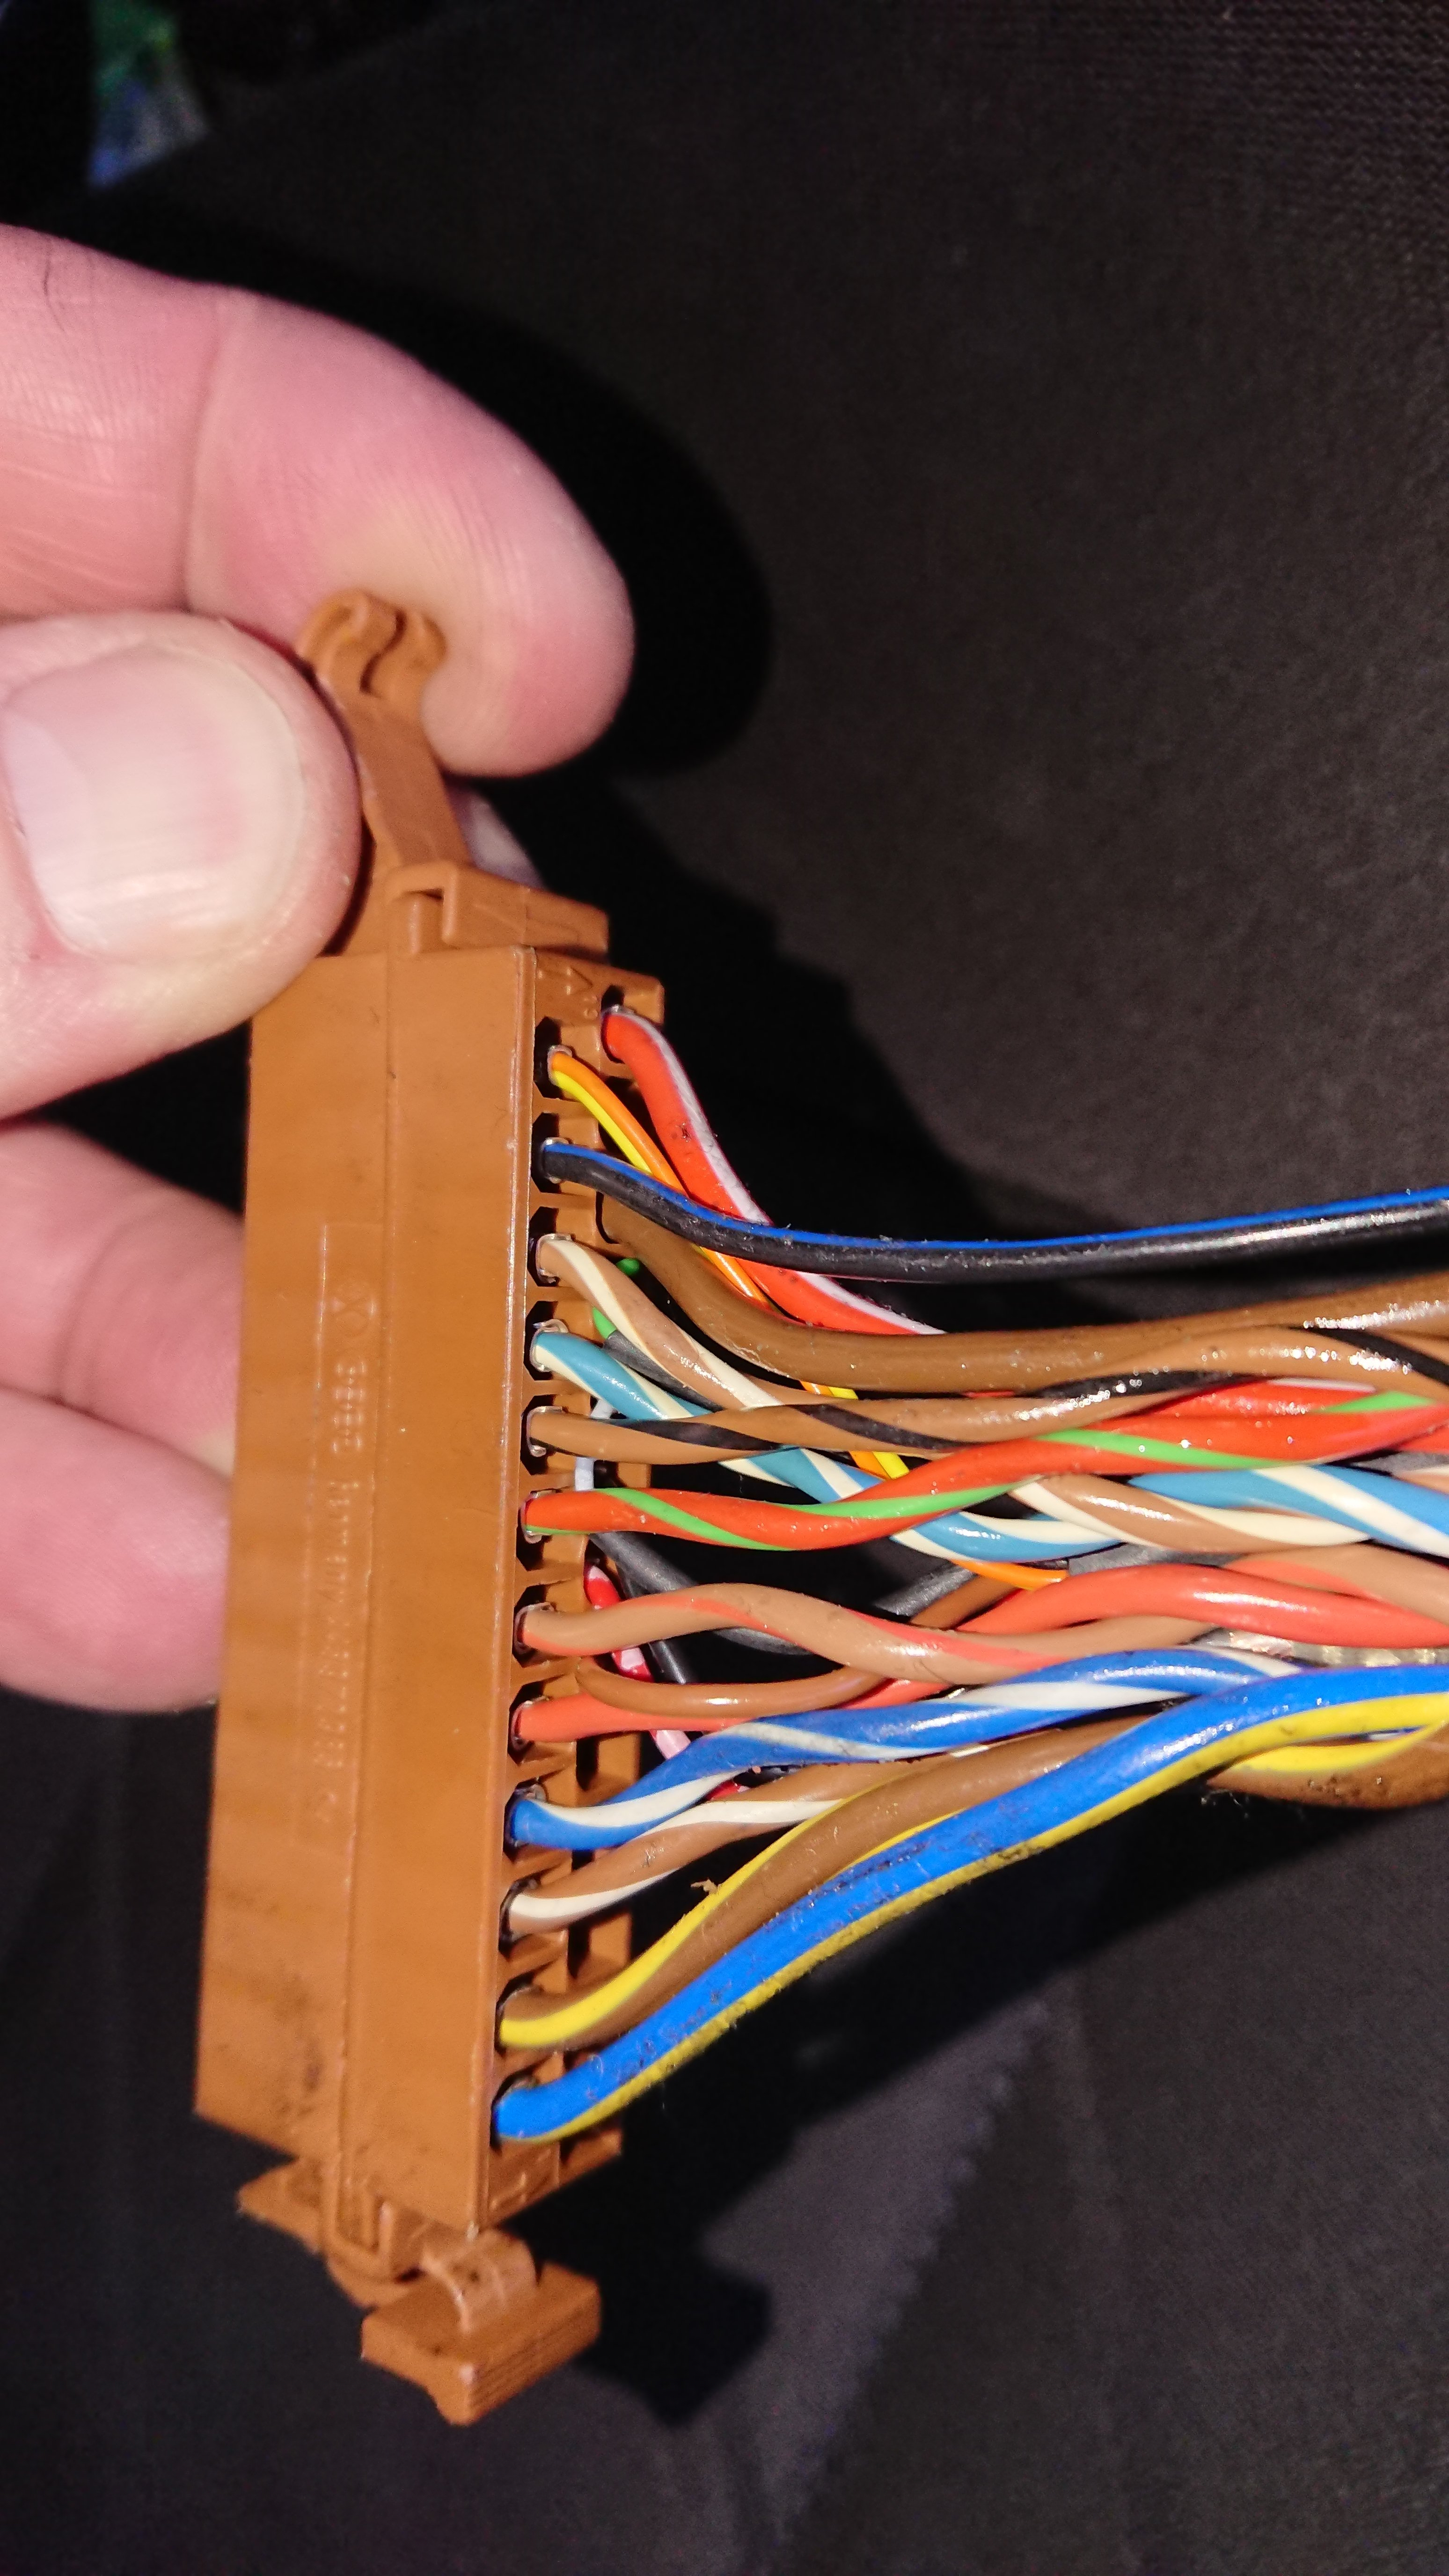 Bose Retrofit Help Audi A2 Owners Club Link Cable Wiring Diagram Connection In Particular For The Connector That Plugs Into Amp And Do I Need To Add Another Bring On Logo Stereo